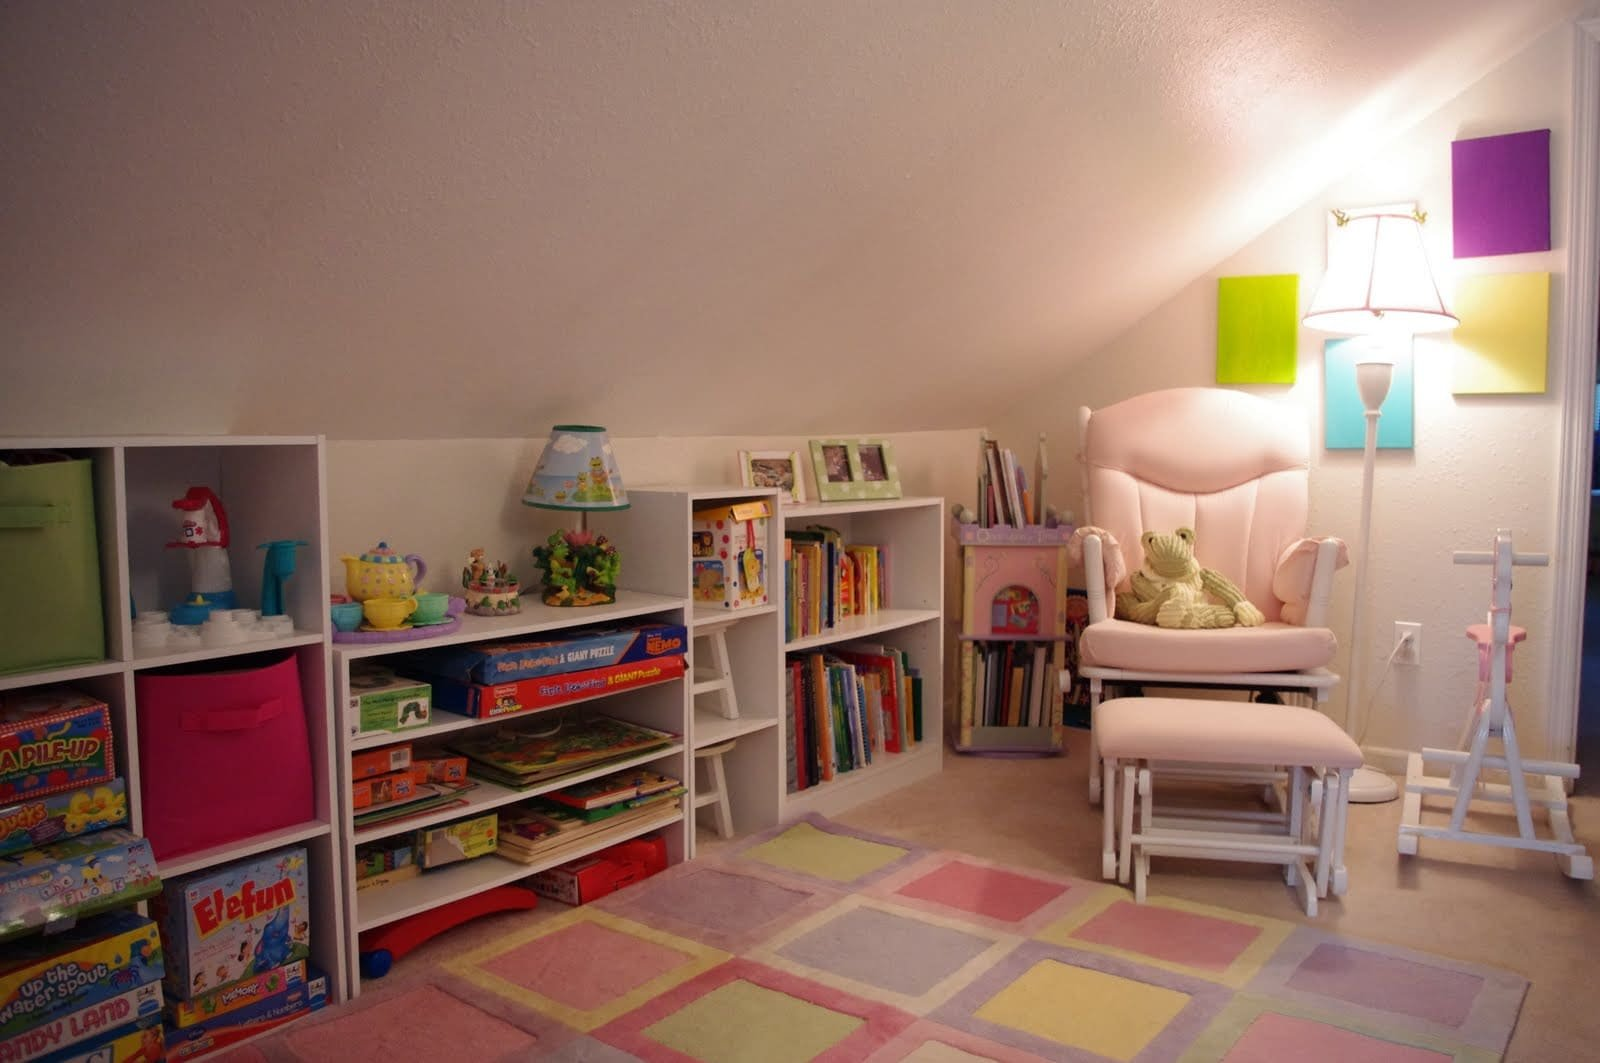 Simphome.com slanted ceiling room decorating on pinterest slanted a with bedroom throughout 2020 and beyond